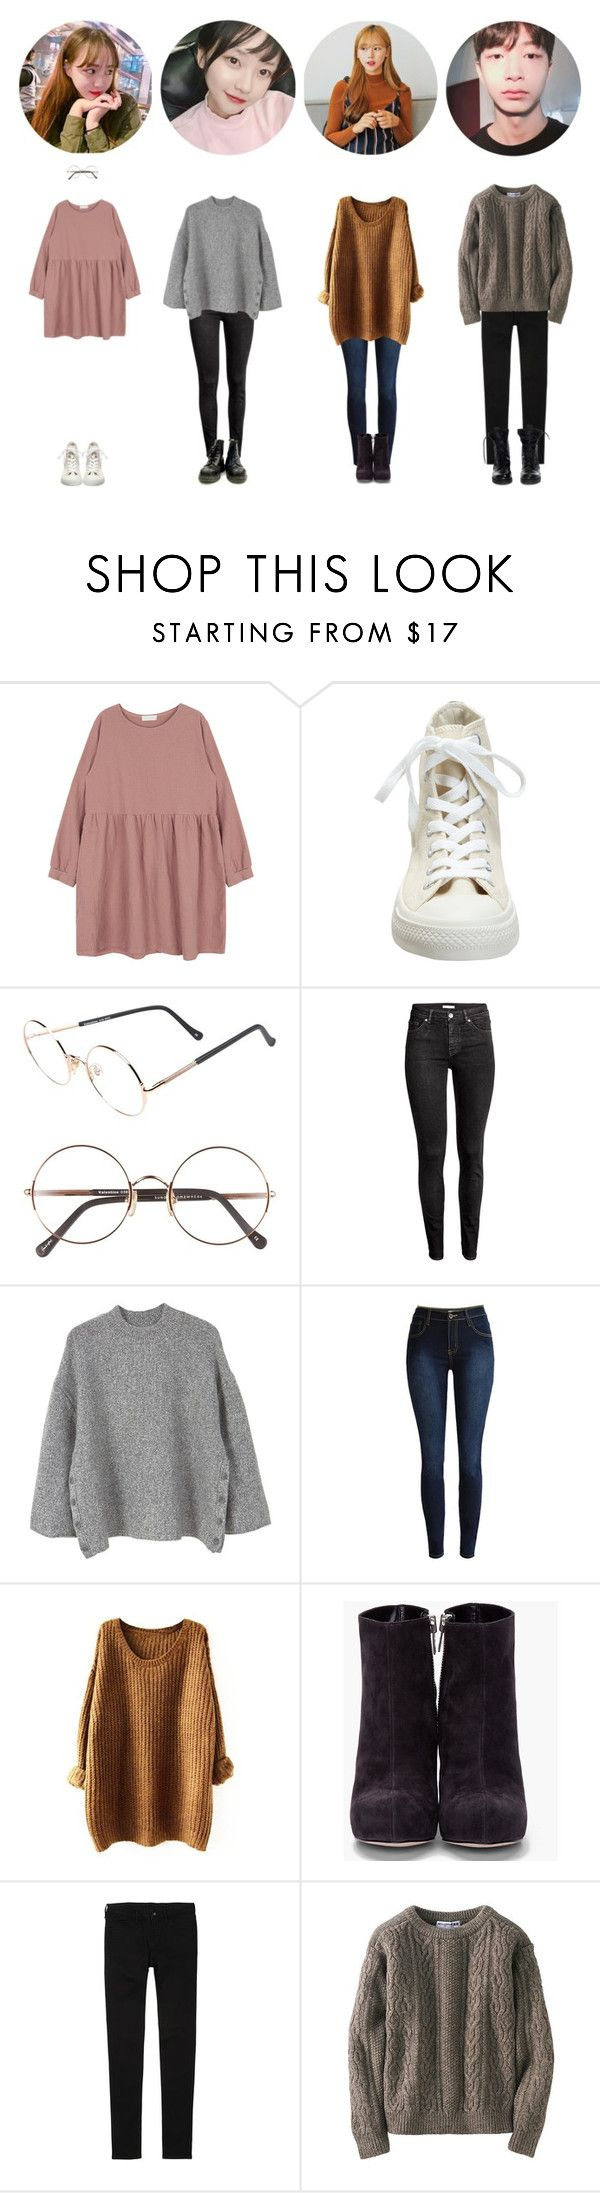 """""""Singing practice"""" by mj-trainees ❤ liked on Polyvore featuring Converse, Sunday Somewhere, H&M, MANGO, Alejandro Ingelmo, Uniqlo and Theyskens' Theory"""